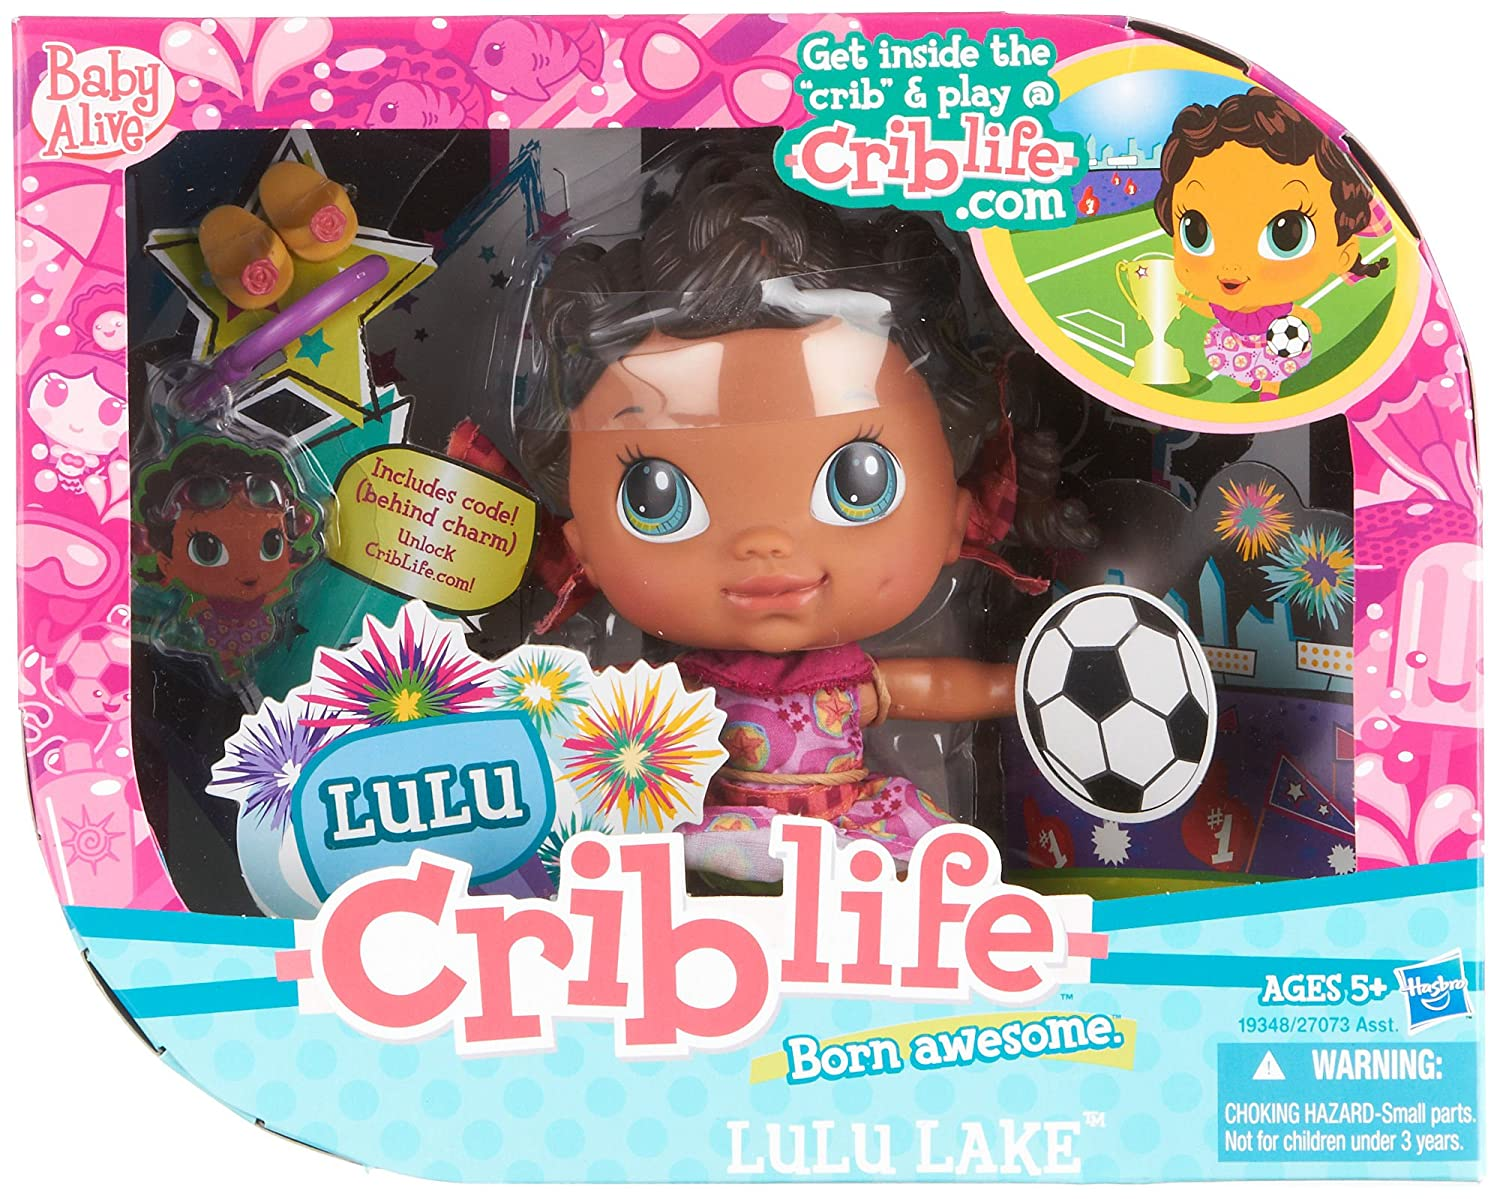 Uncategorized Criblife amazon com baby alive crib life fashion play doll lulu lake toys games